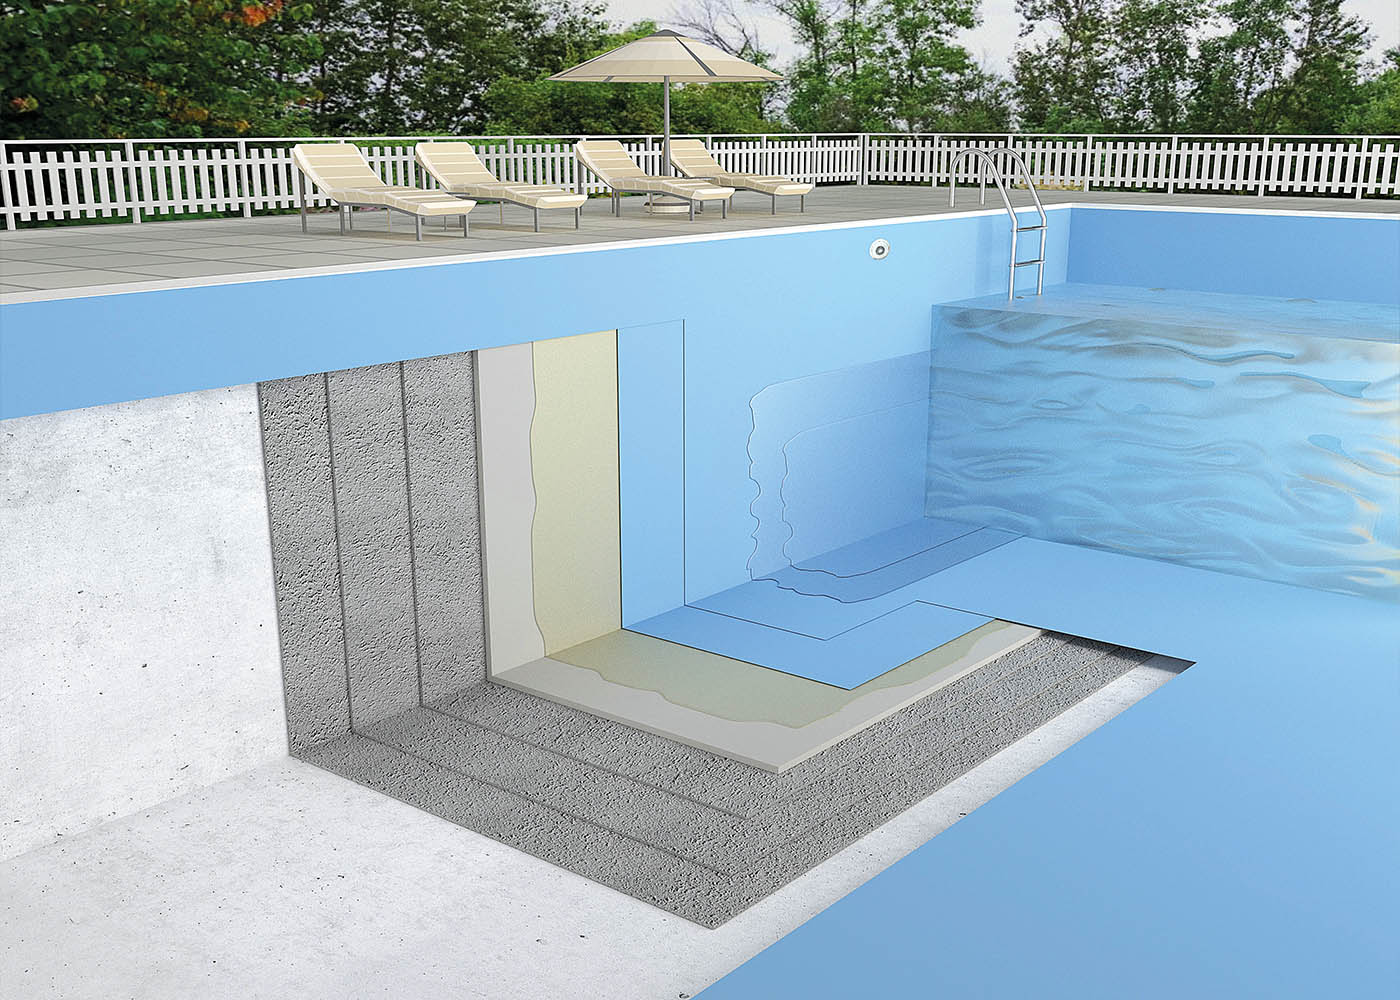 3d-visualization of a pool